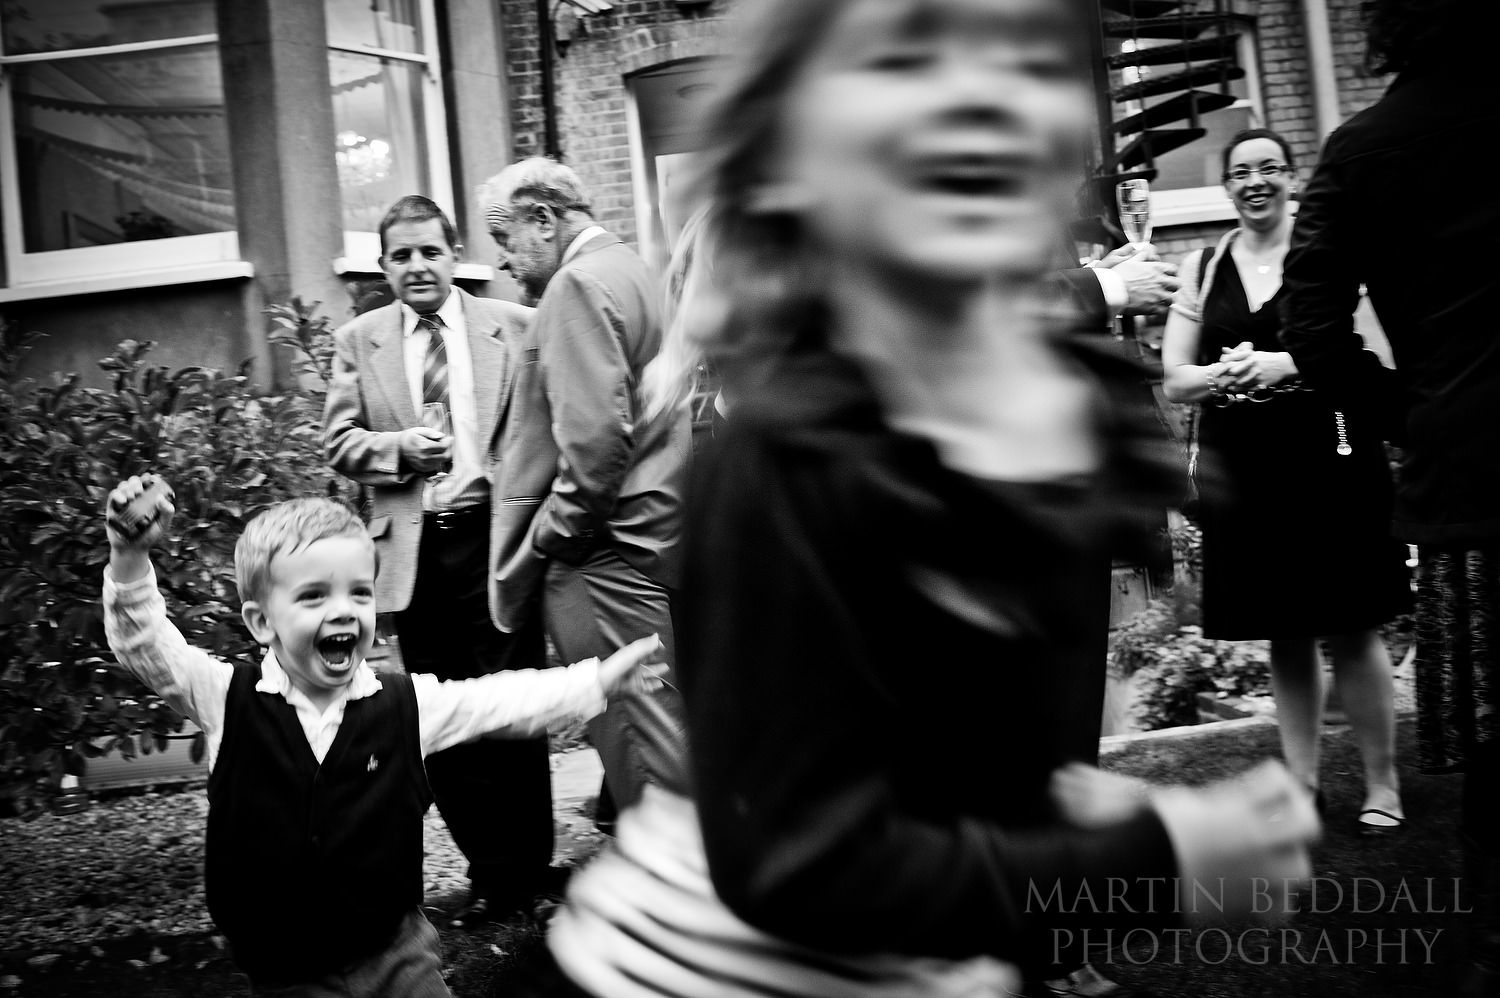 Kids playing at Hove wedding reception